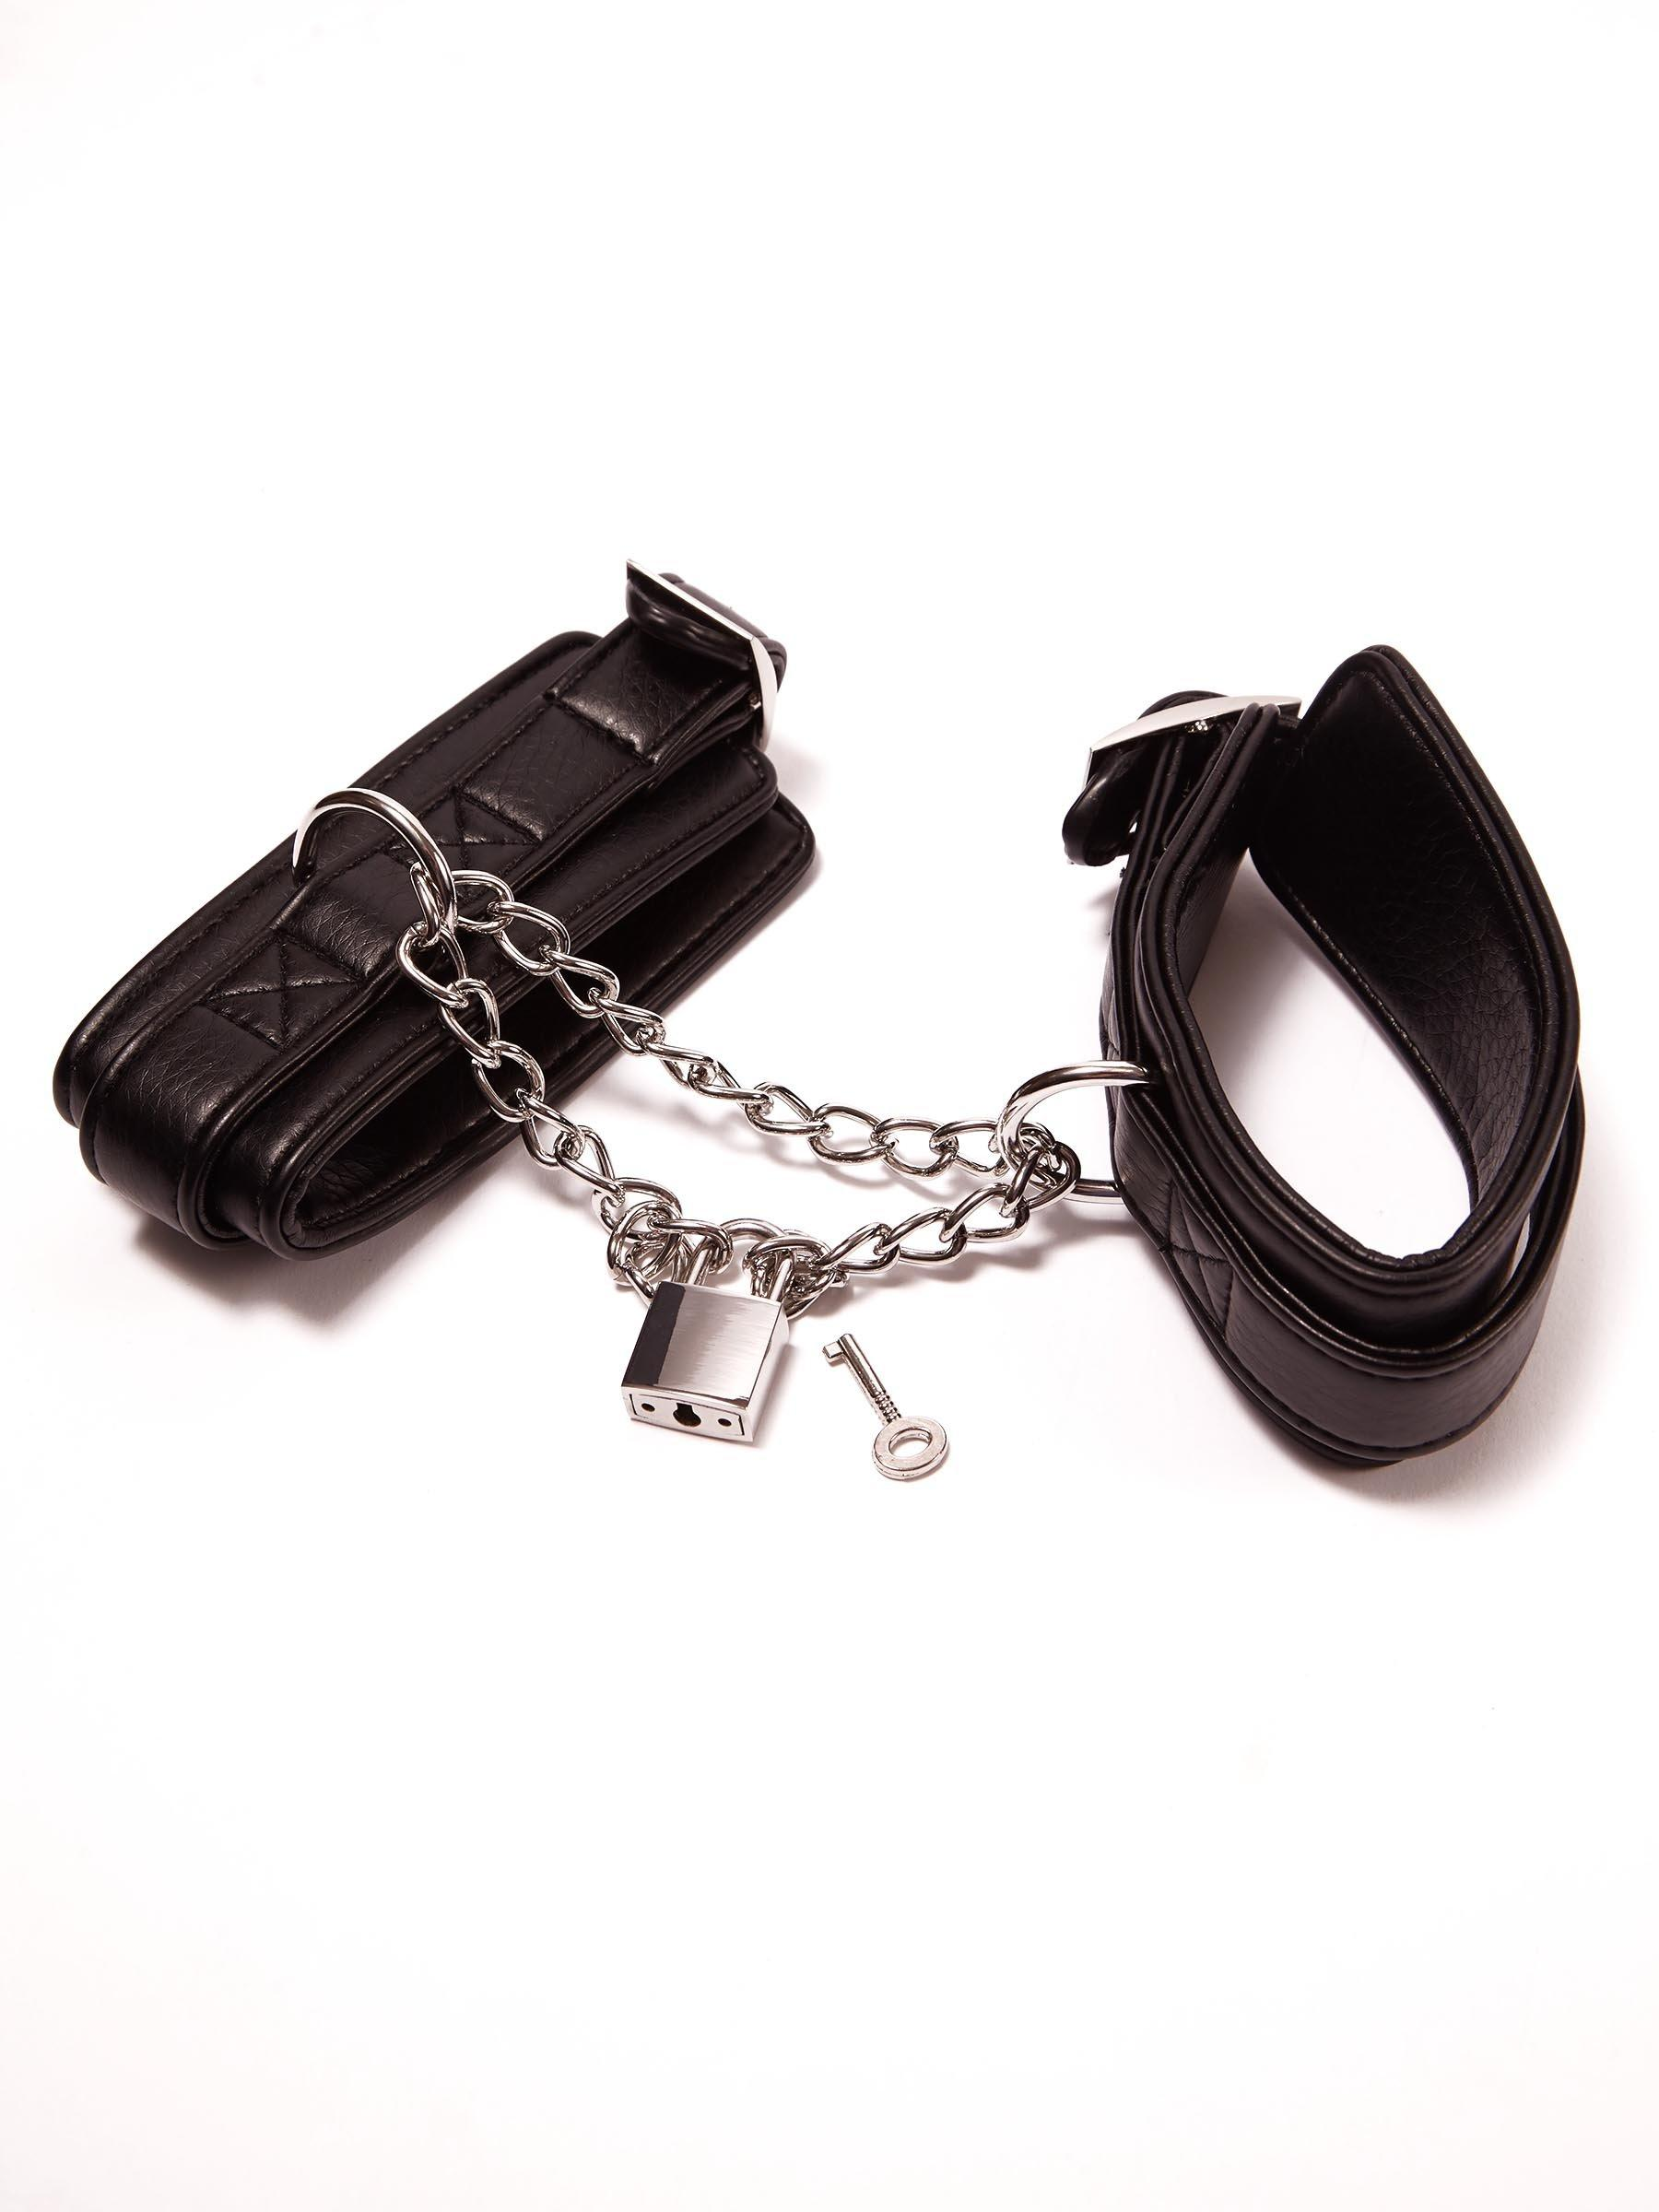 summers ankle buckle cuffs bondage restraints fetish bedroom accessory